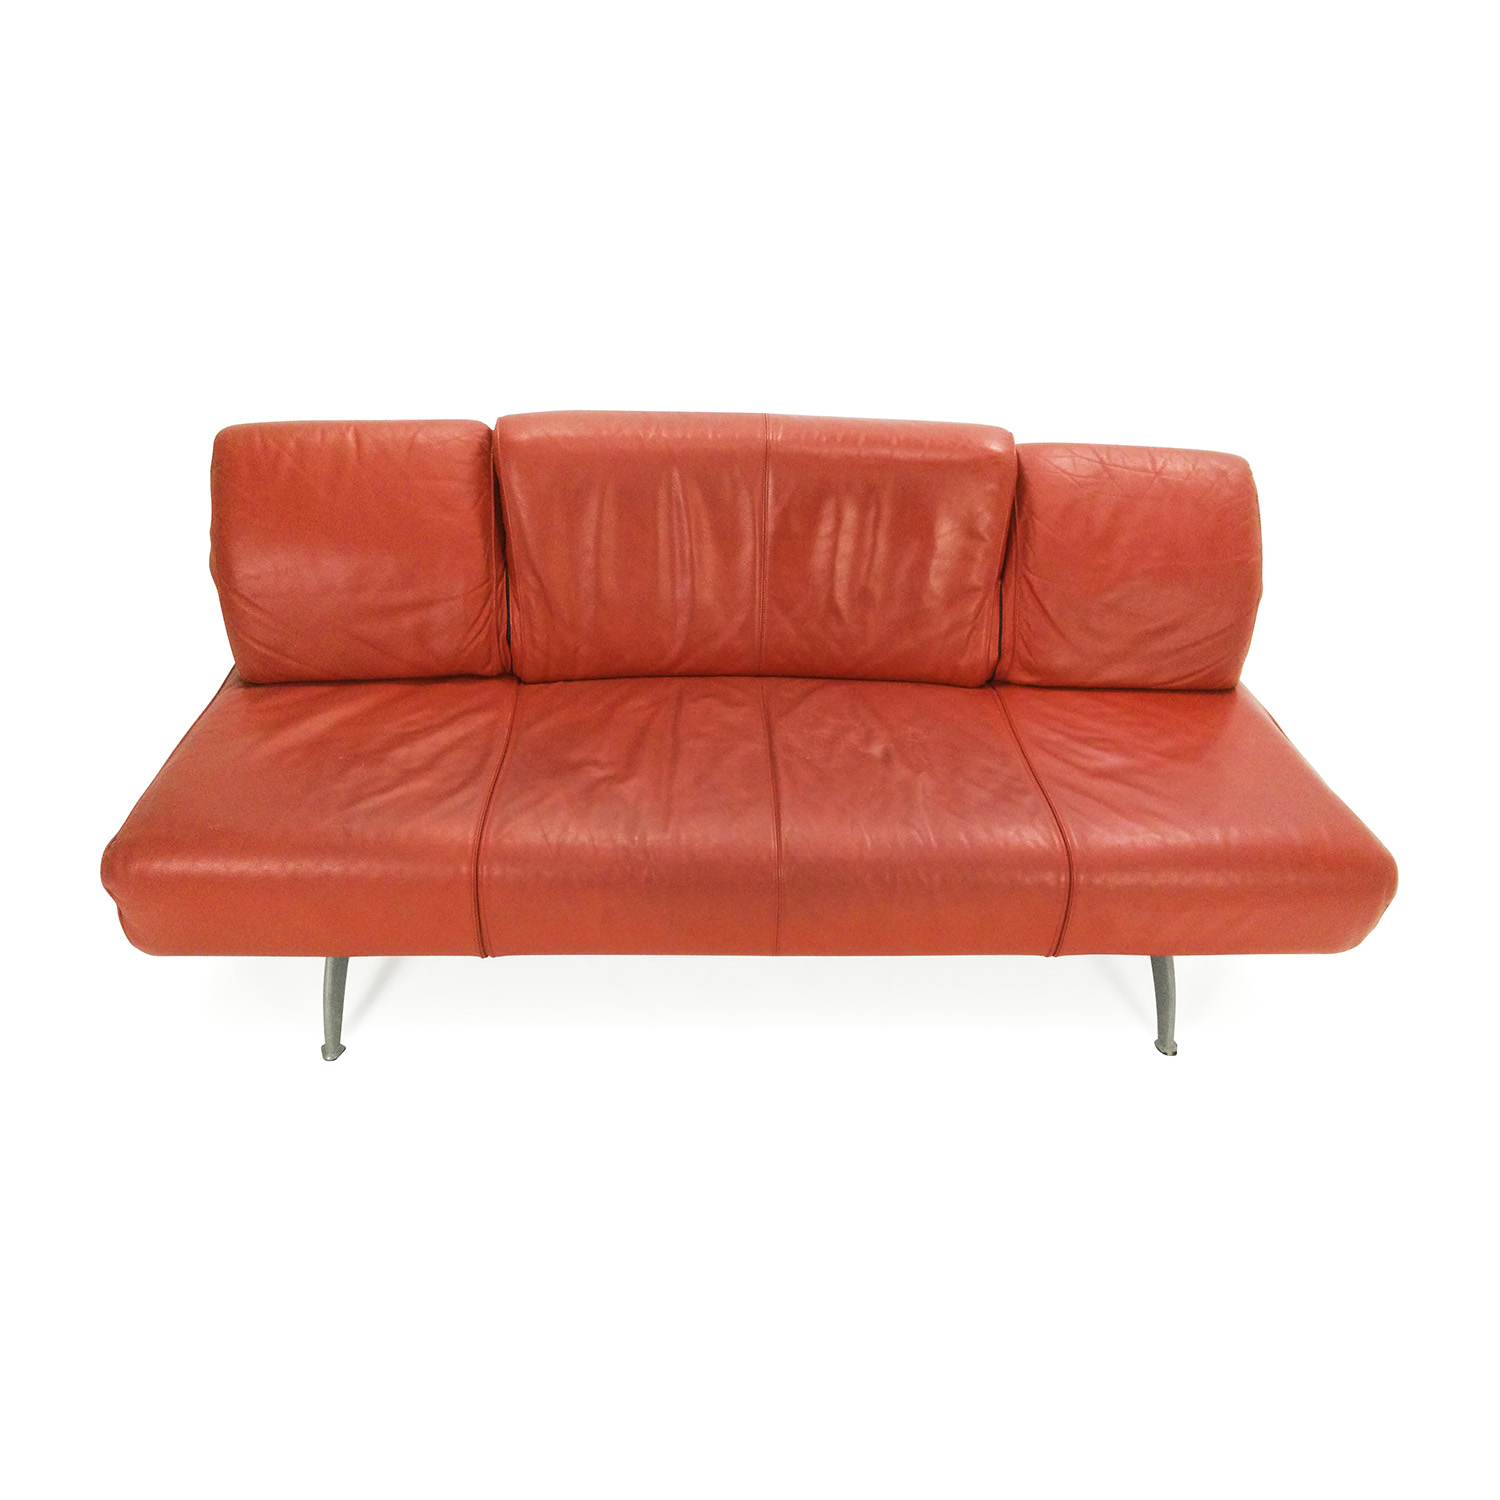 red leather sofas and chairs sleeper sofa to fit through narrow doorway 82 off team by wellis